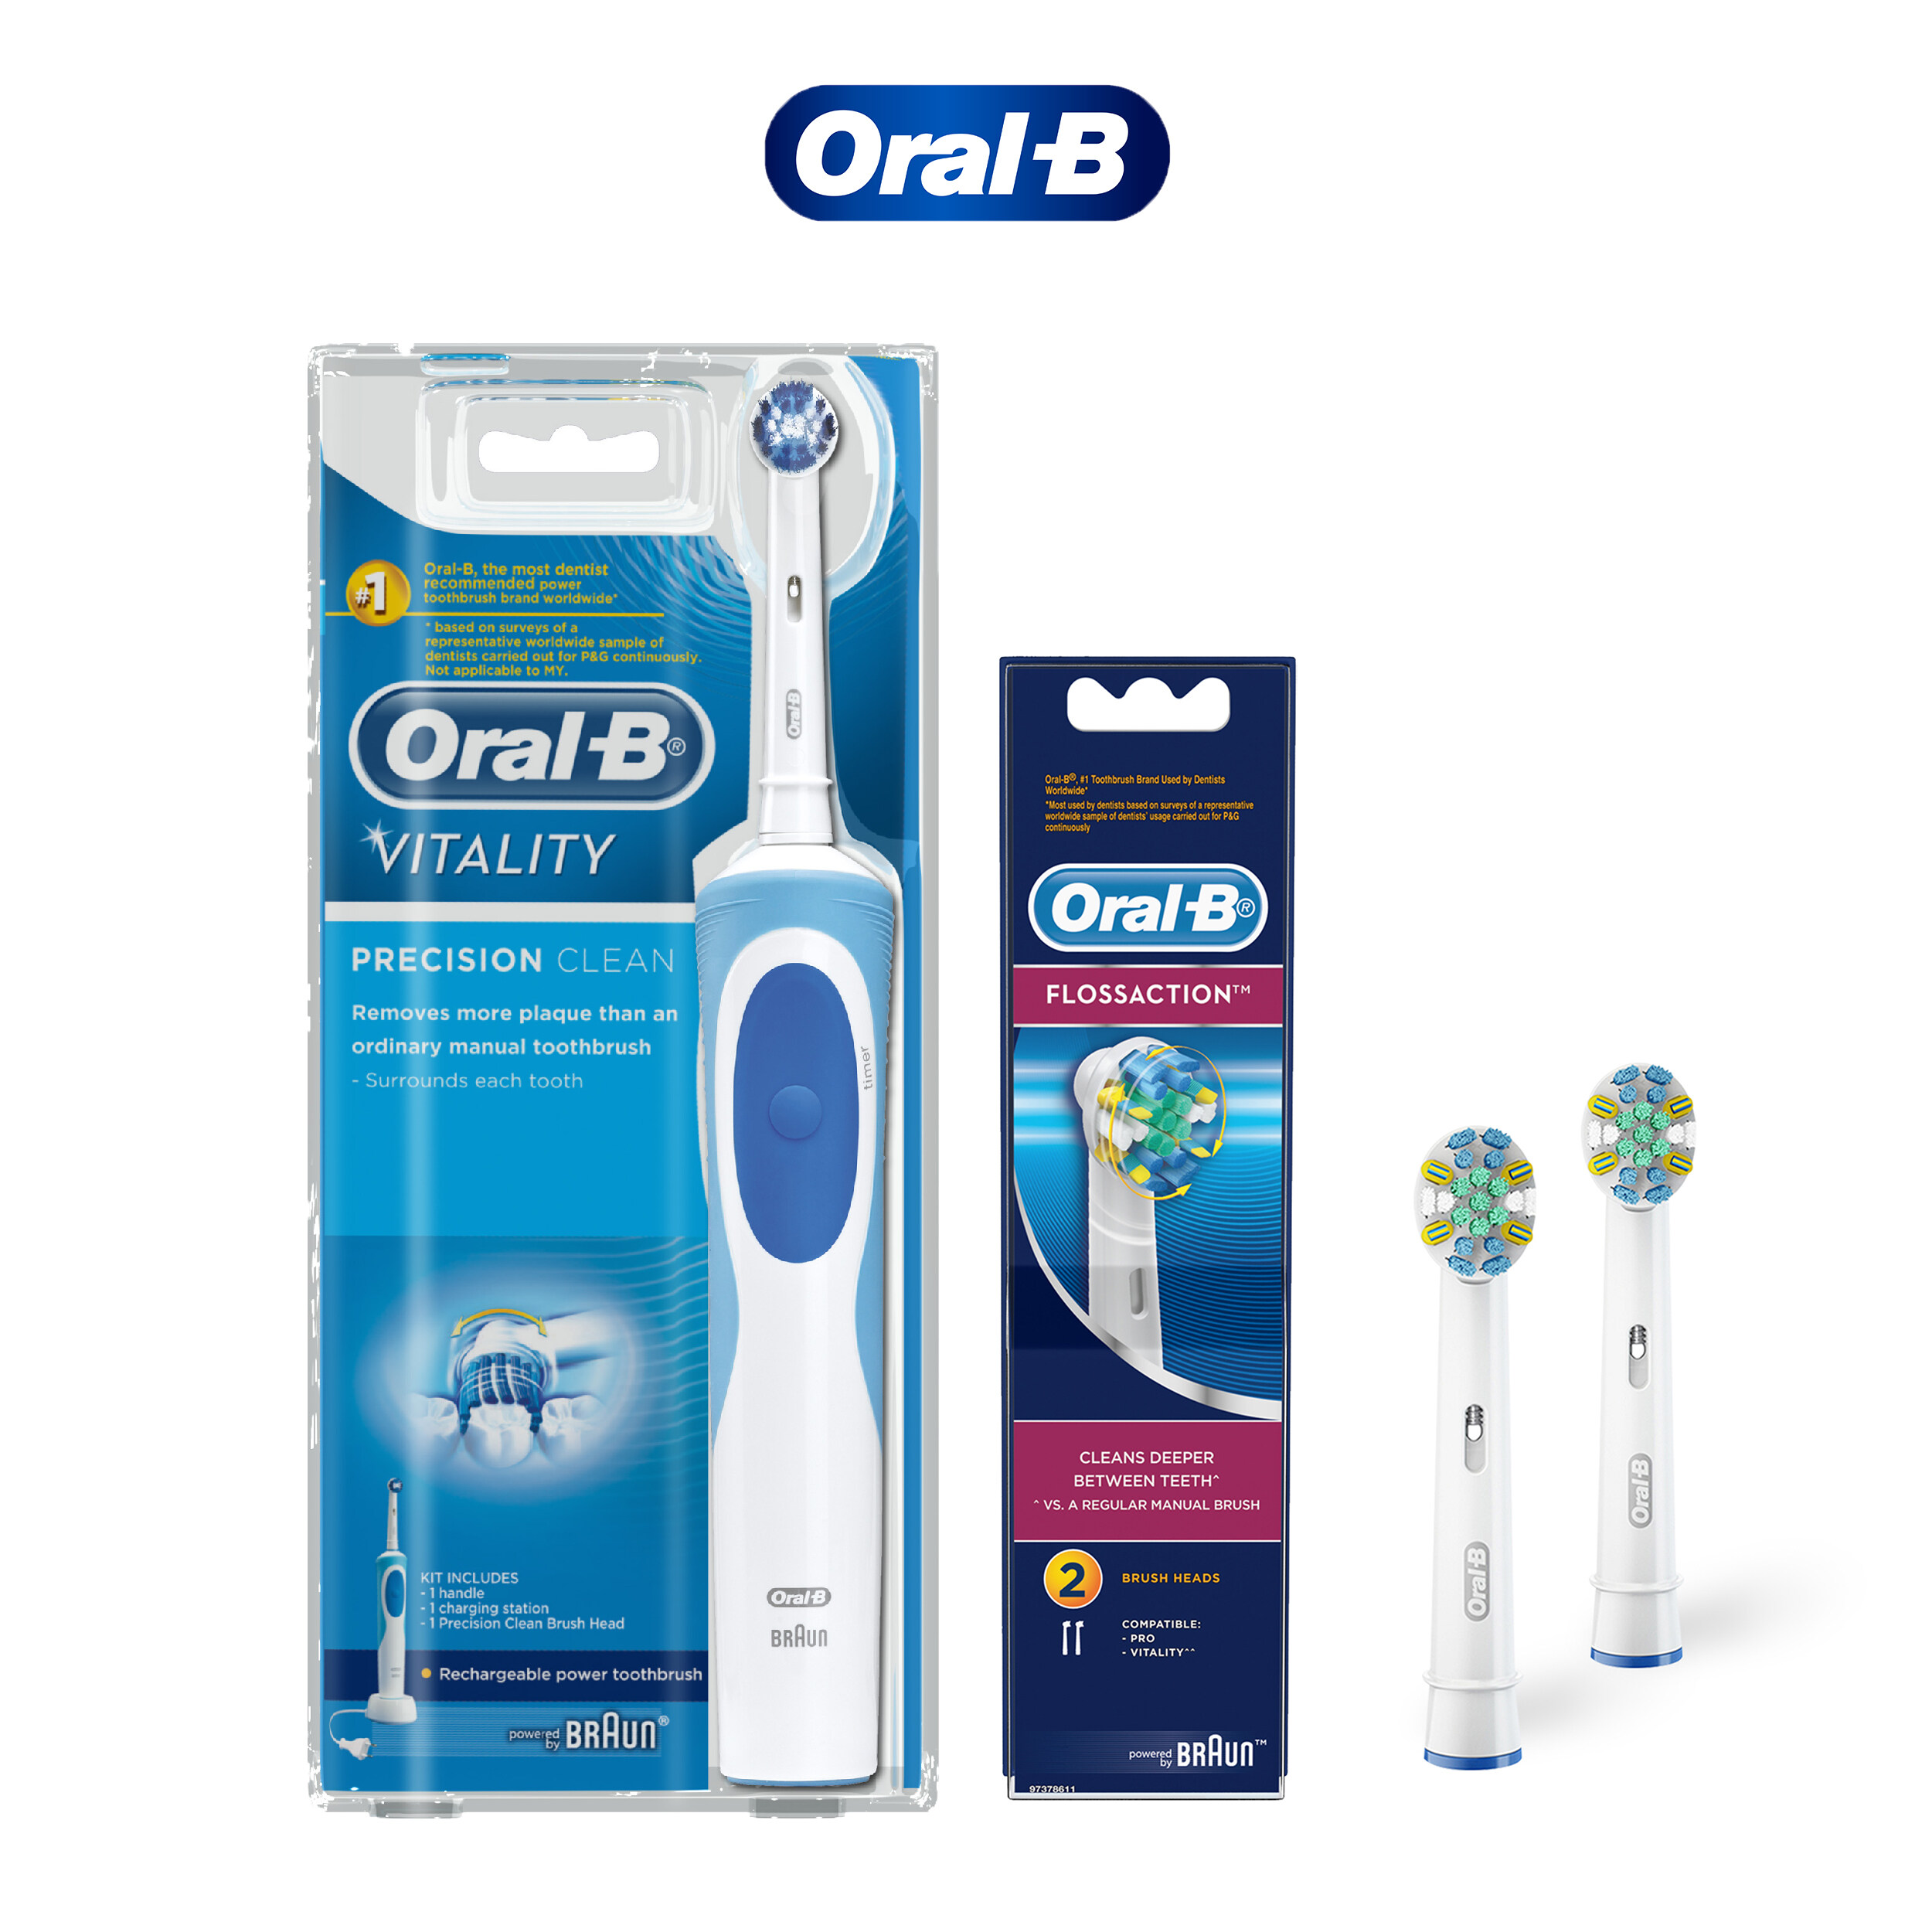 Oral-B Vitality Precision Clean Electric Toothbrush & Floss Action Refill 2 Count